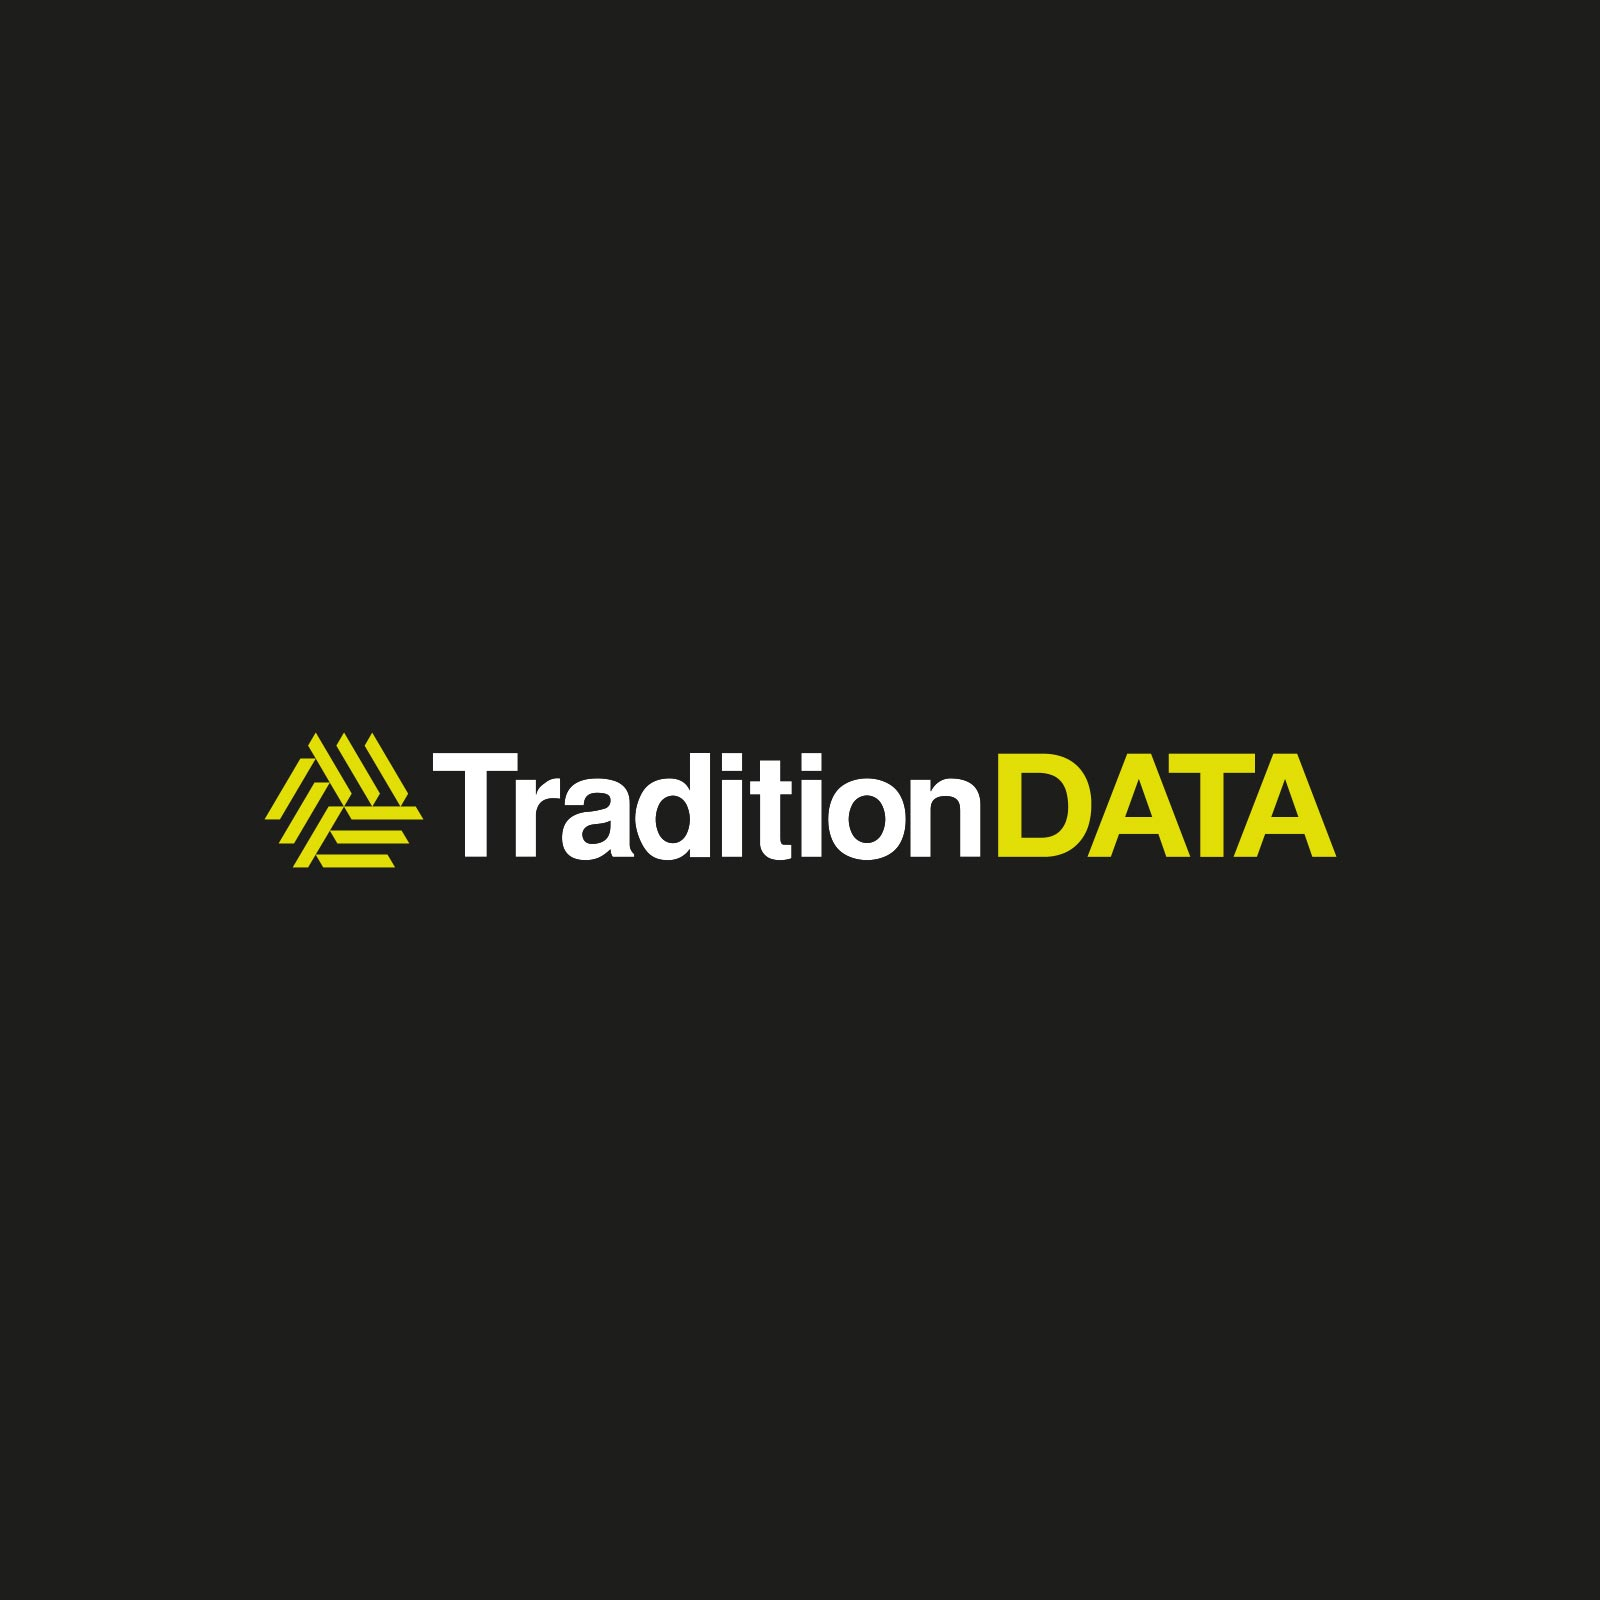 Tradition-data_LOGO.jpg